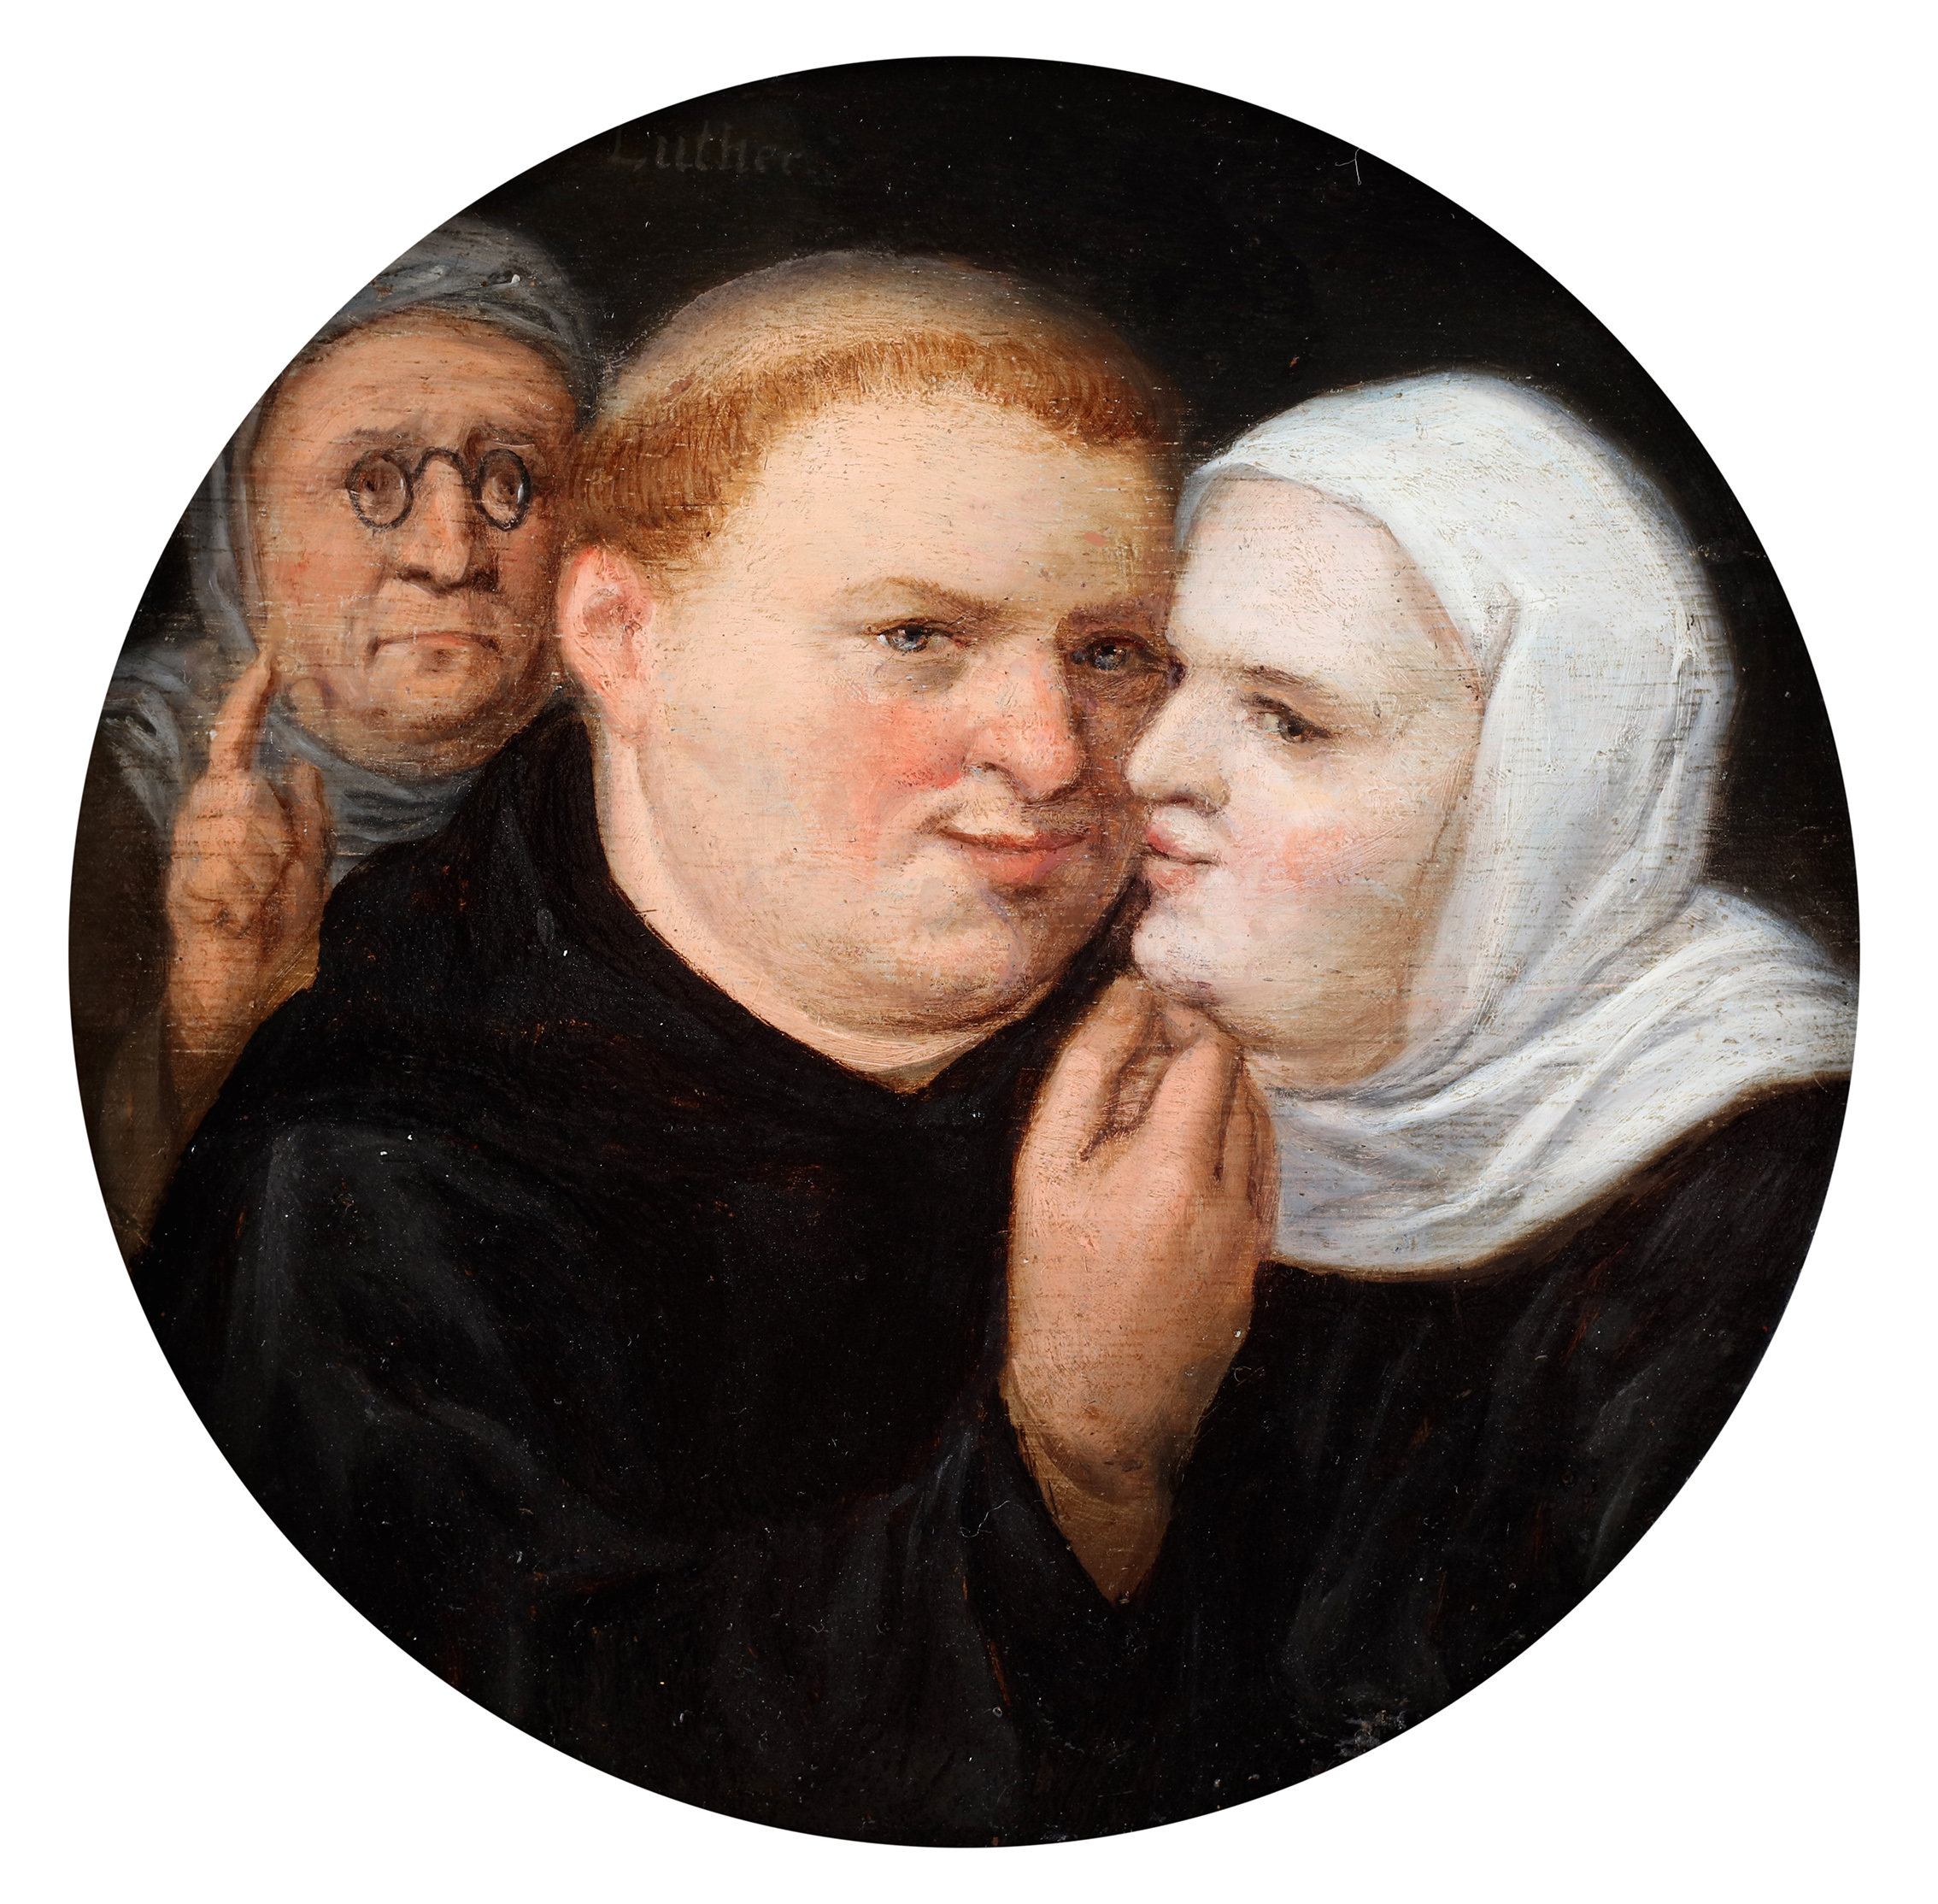 A moralizing scene depicting an 'unwanted connection,' possibly between Luther and Katharina von Bora